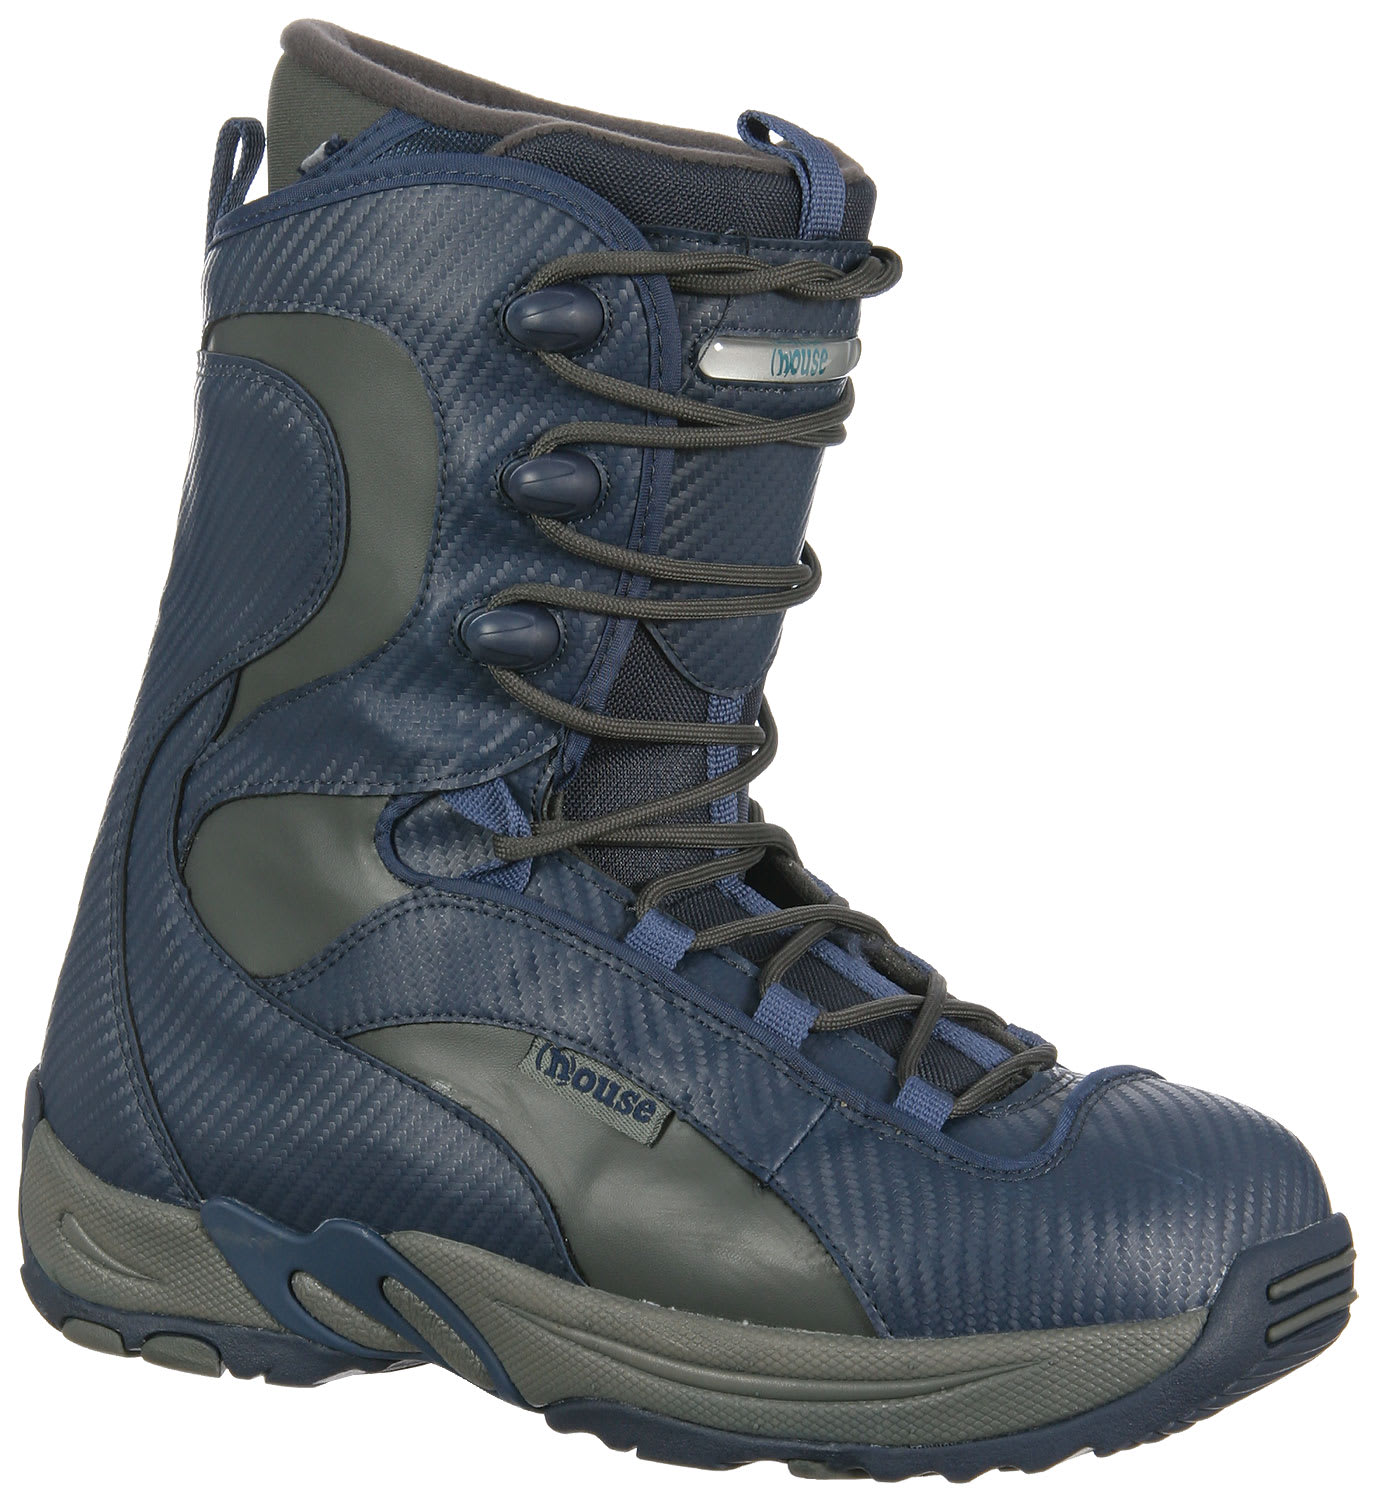 Shop for House Hyland Boots Blue/Grey - Men's